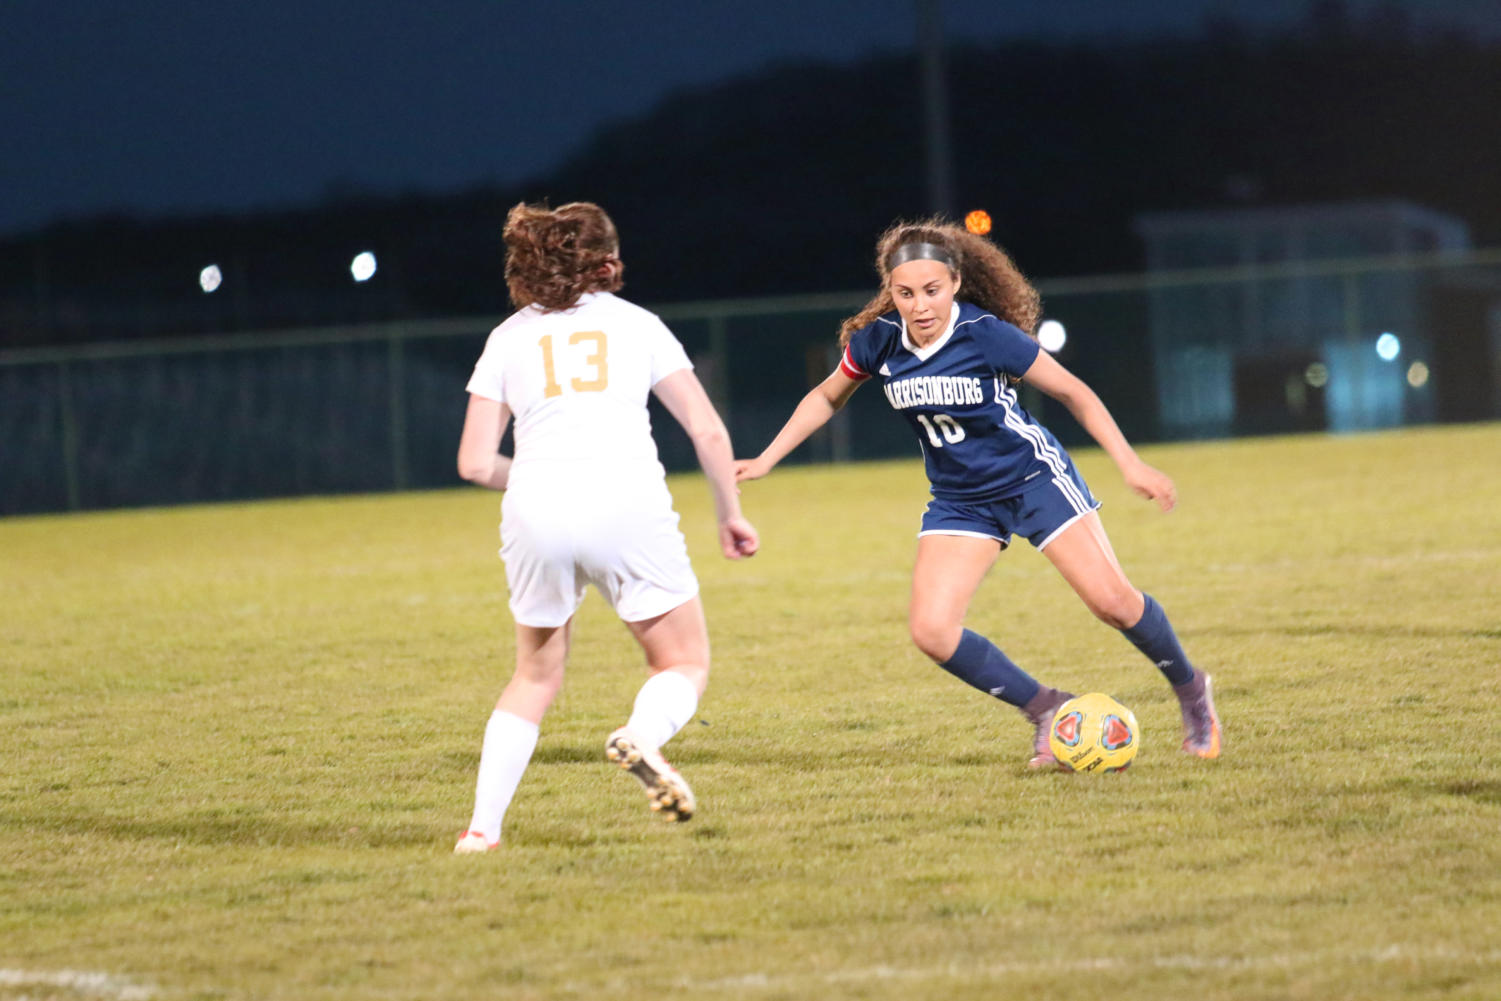 Sophomore Ashley Iscoa takes on a defender as she heads to goal. Iscoa contributed two goals on the night bringing her total to 4 goals this season.